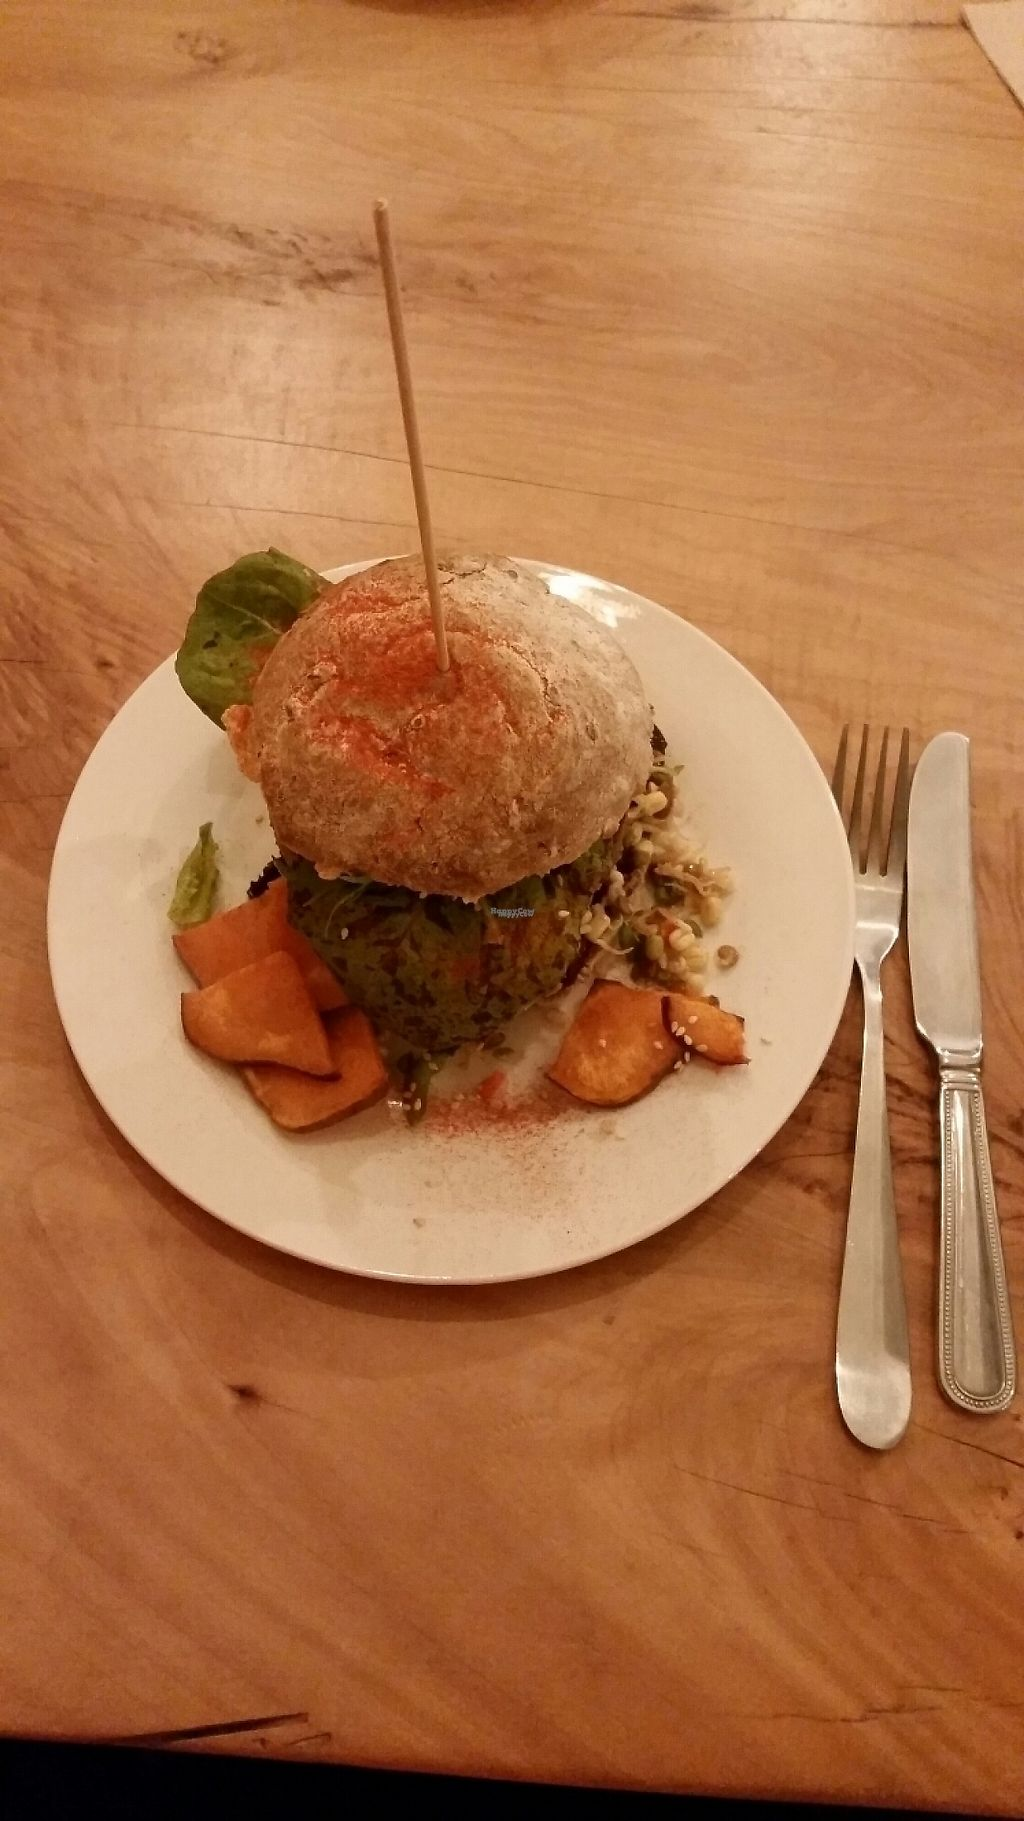 "Photo of CLOSED: Naturalley Organic Cafe  by <a href=""/members/profile/AndyTheVWDude"">AndyTheVWDude</a> <br/>Health Burger $15....Tasty! <br/> November 9, 2016  - <a href='/contact/abuse/image/69280/187603'>Report</a>"